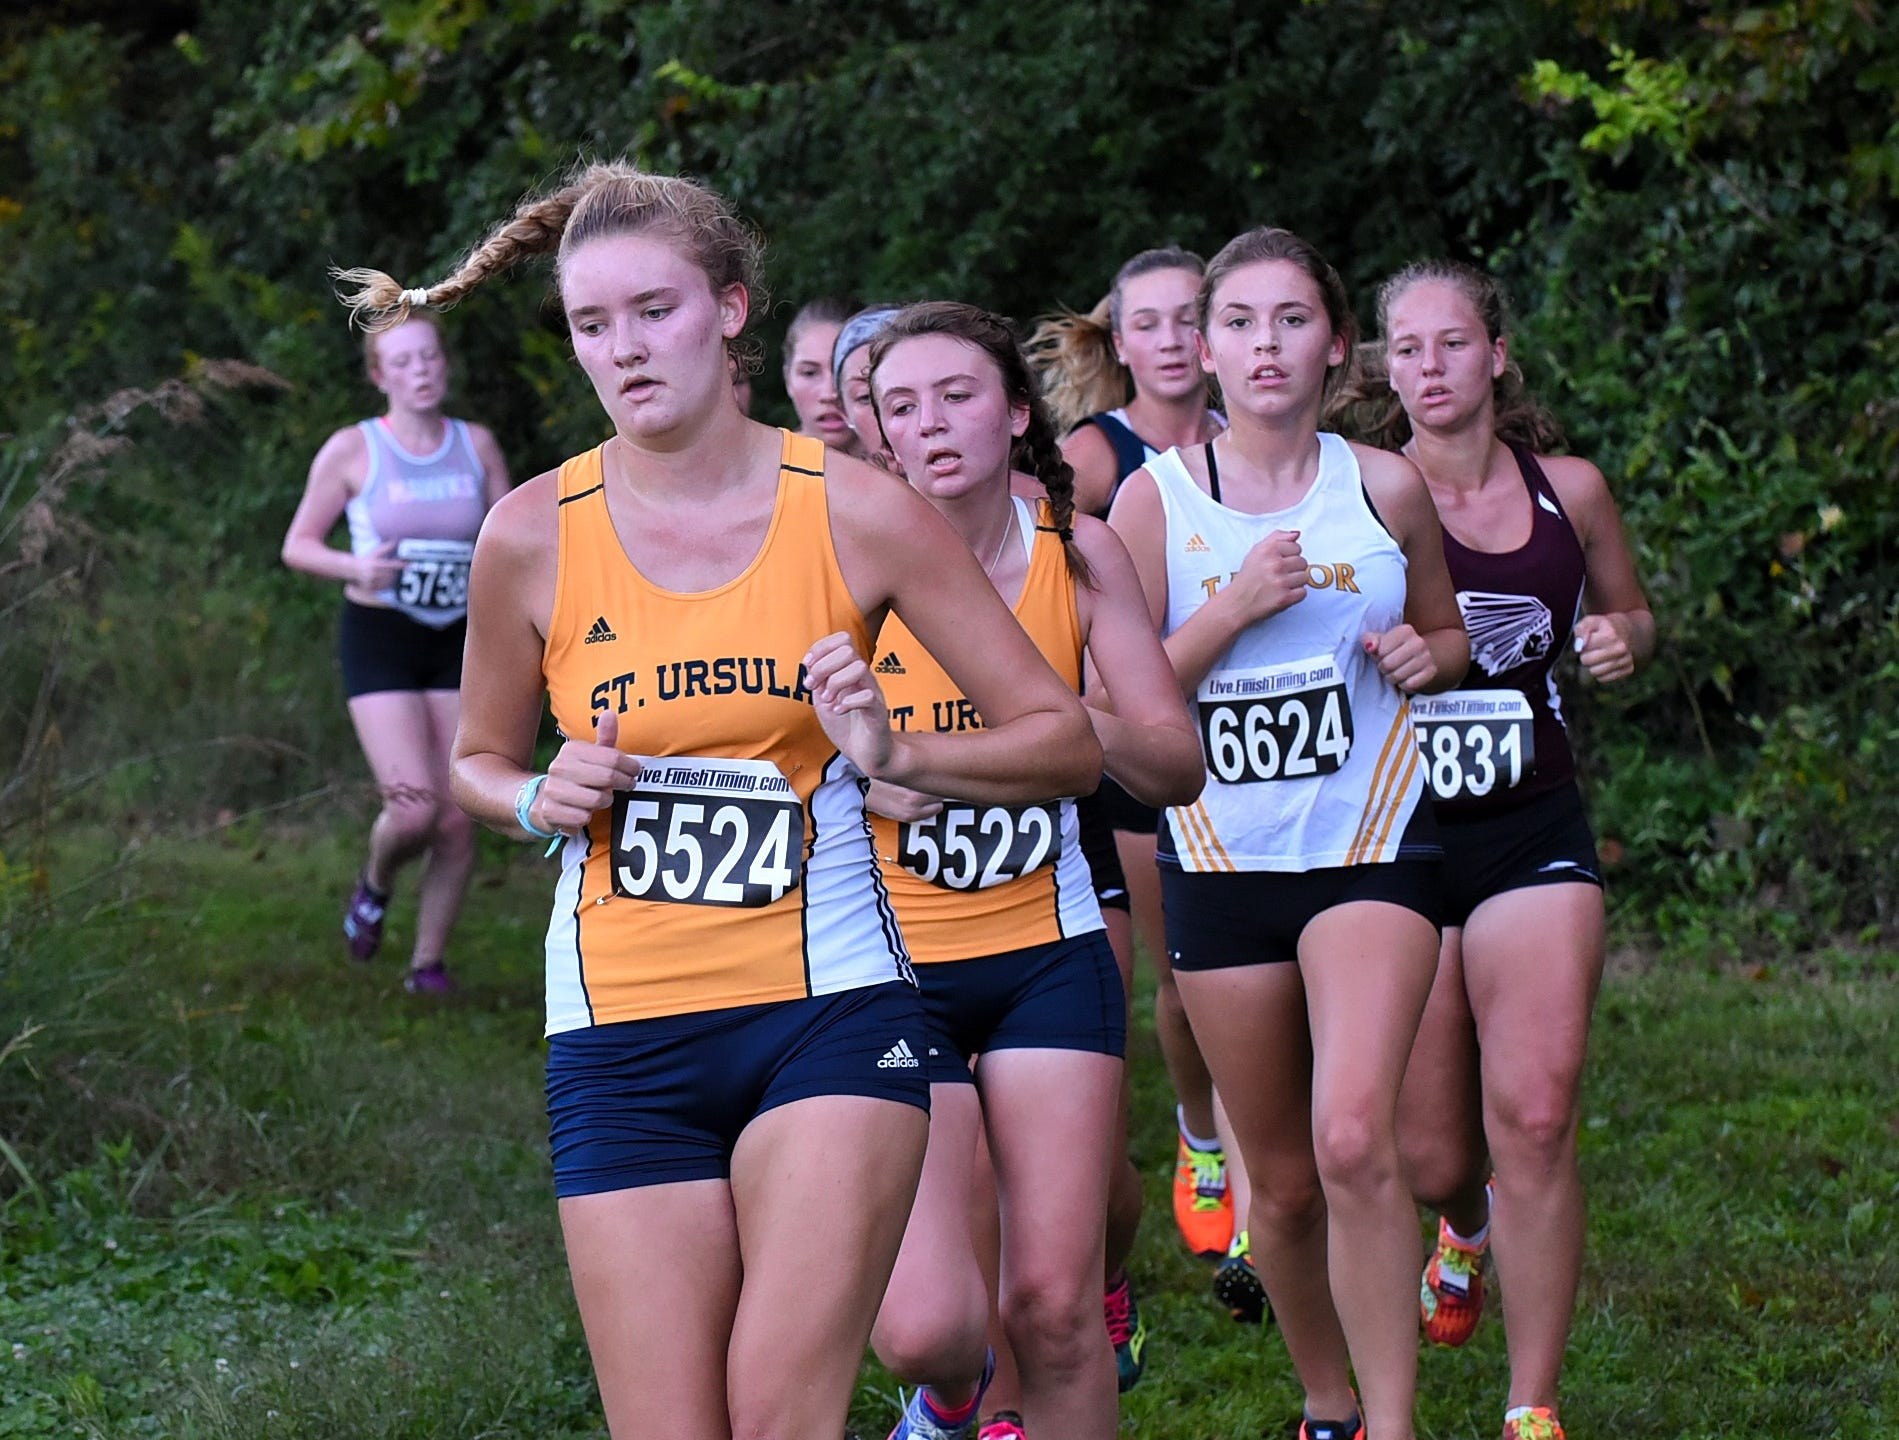 St.Ursula's Claire Earls and Hanna Durbin lead a pack of runners around a corner in the forest while running at the 2018 Milford Cross Country Invitational, Sept. 15, 2018.